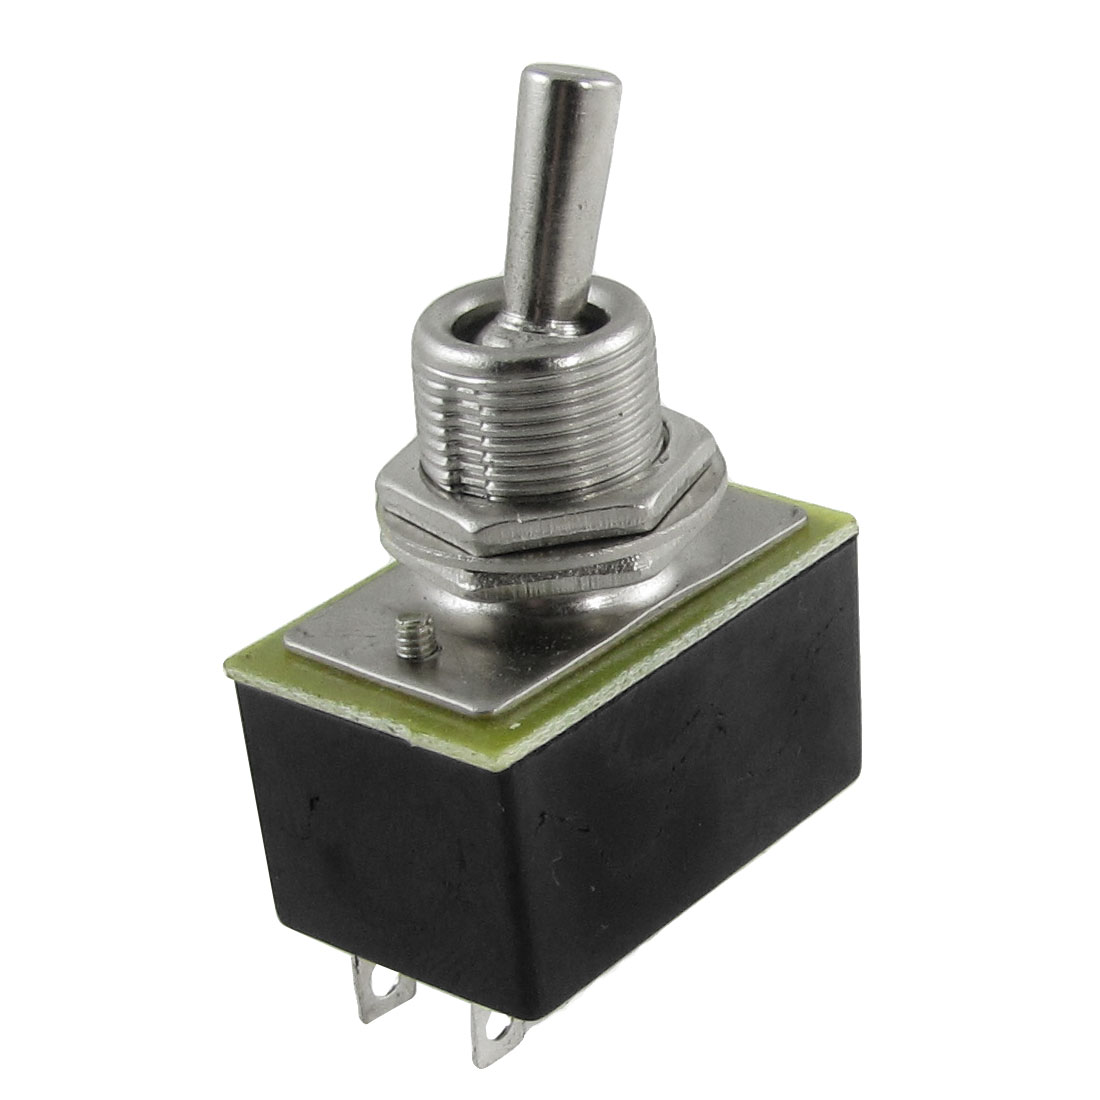 AC 3A/220V 6A/115V DPST ON/OFF 2 Position Toggle Switch